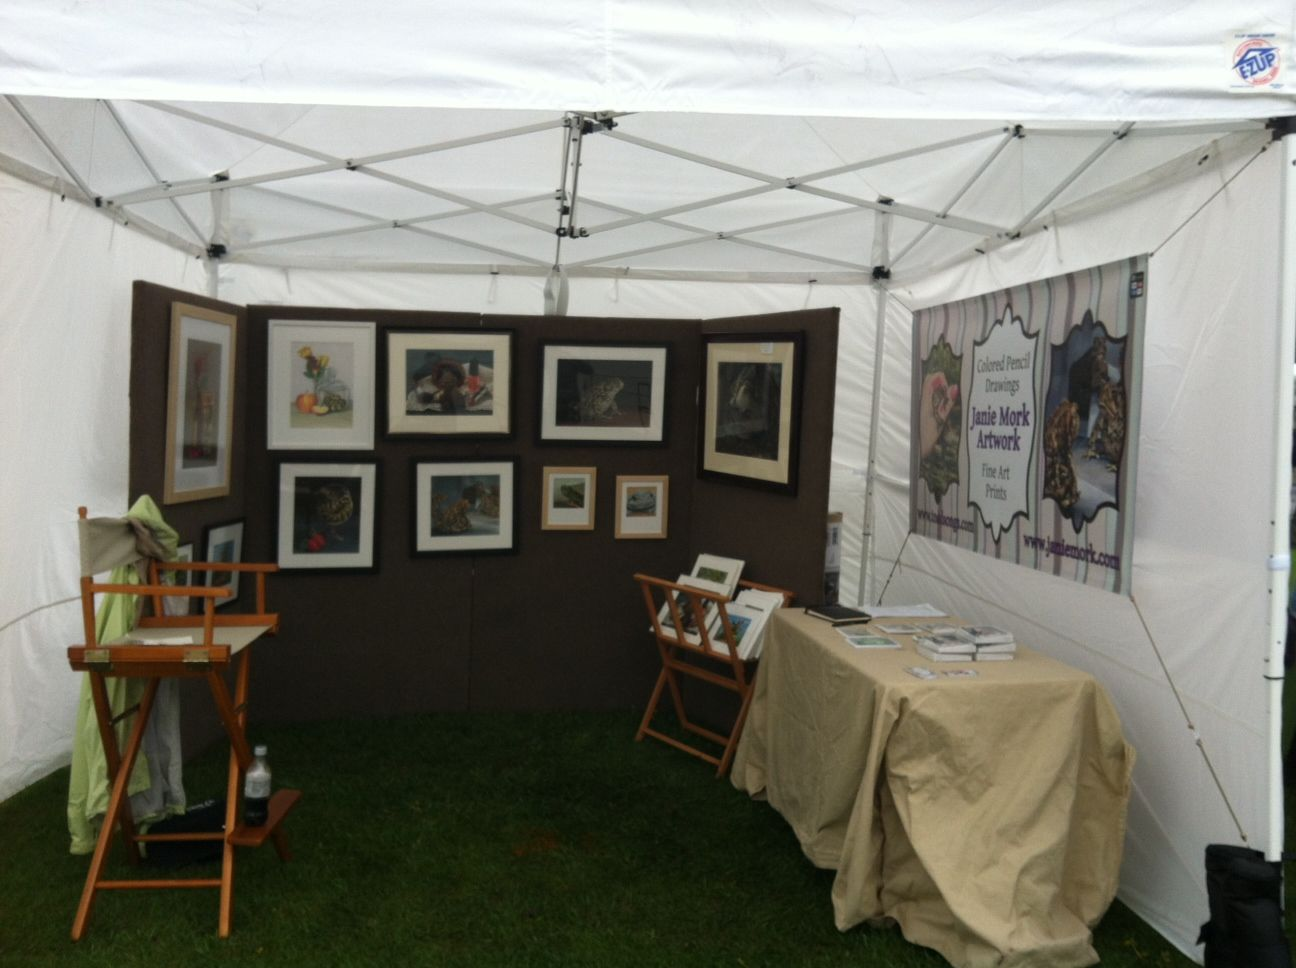 art fair booth ideas - Google Search & art fair booth ideas - Google Search | Booth ideas | Pinterest ...